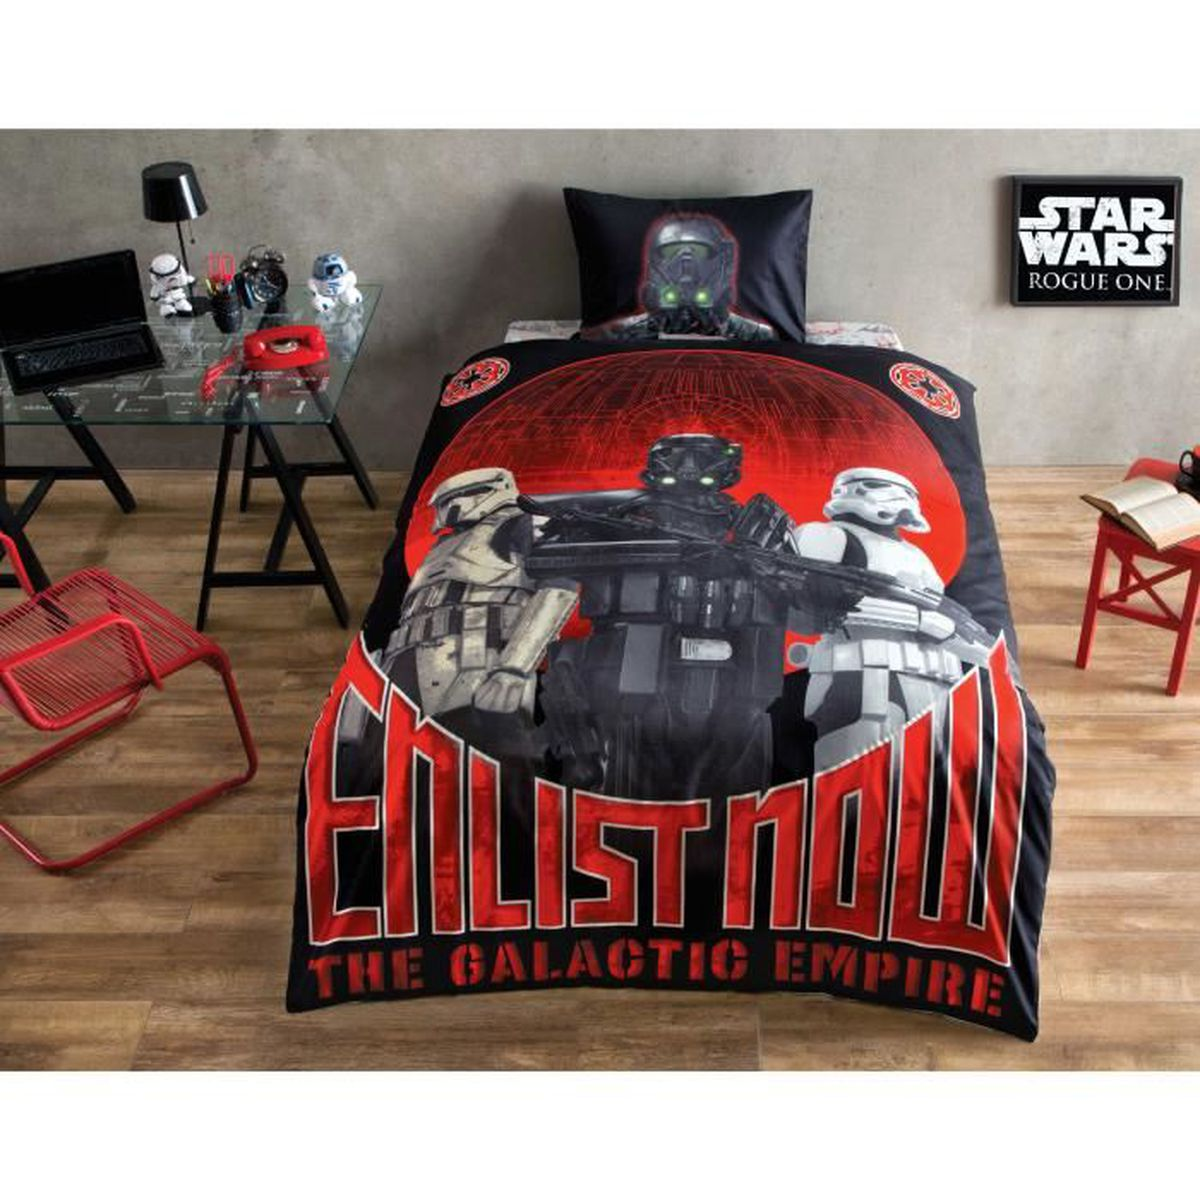 star wars glow imprim e 100 coton 1 personne parure de couette 3 pcs housse de couette 160x220. Black Bedroom Furniture Sets. Home Design Ideas